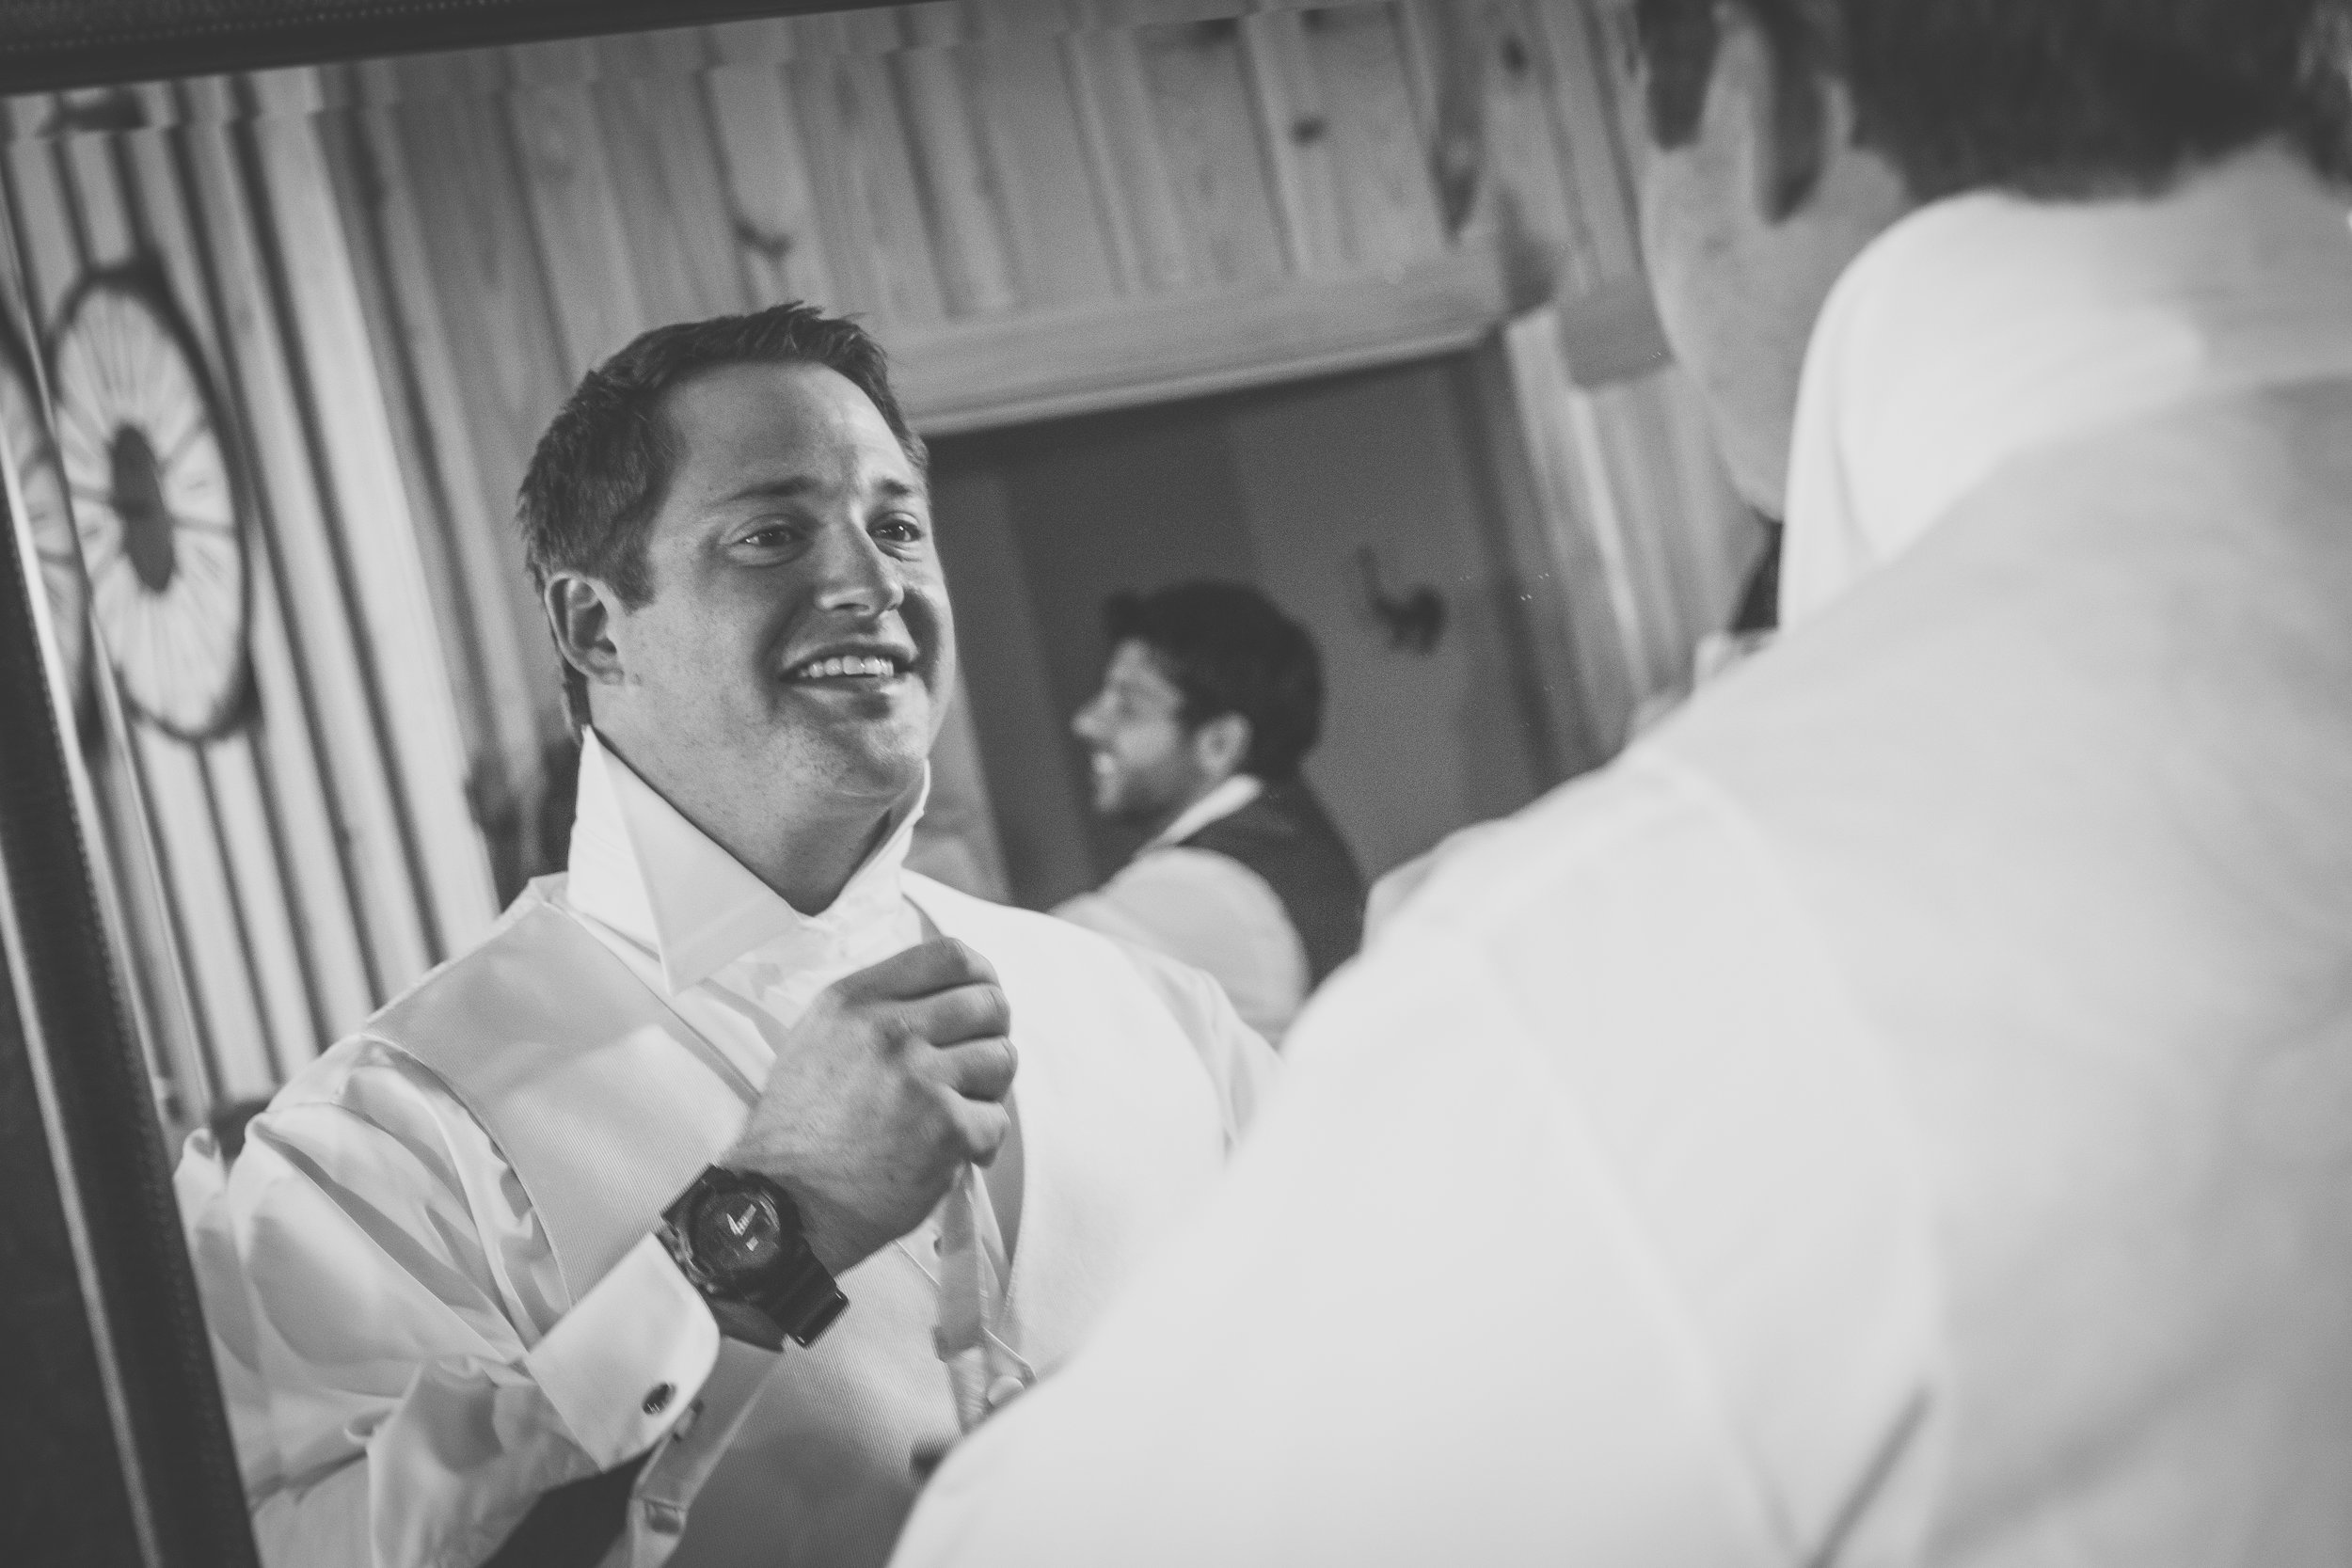 WeddingPhotographerAubrey.jpg